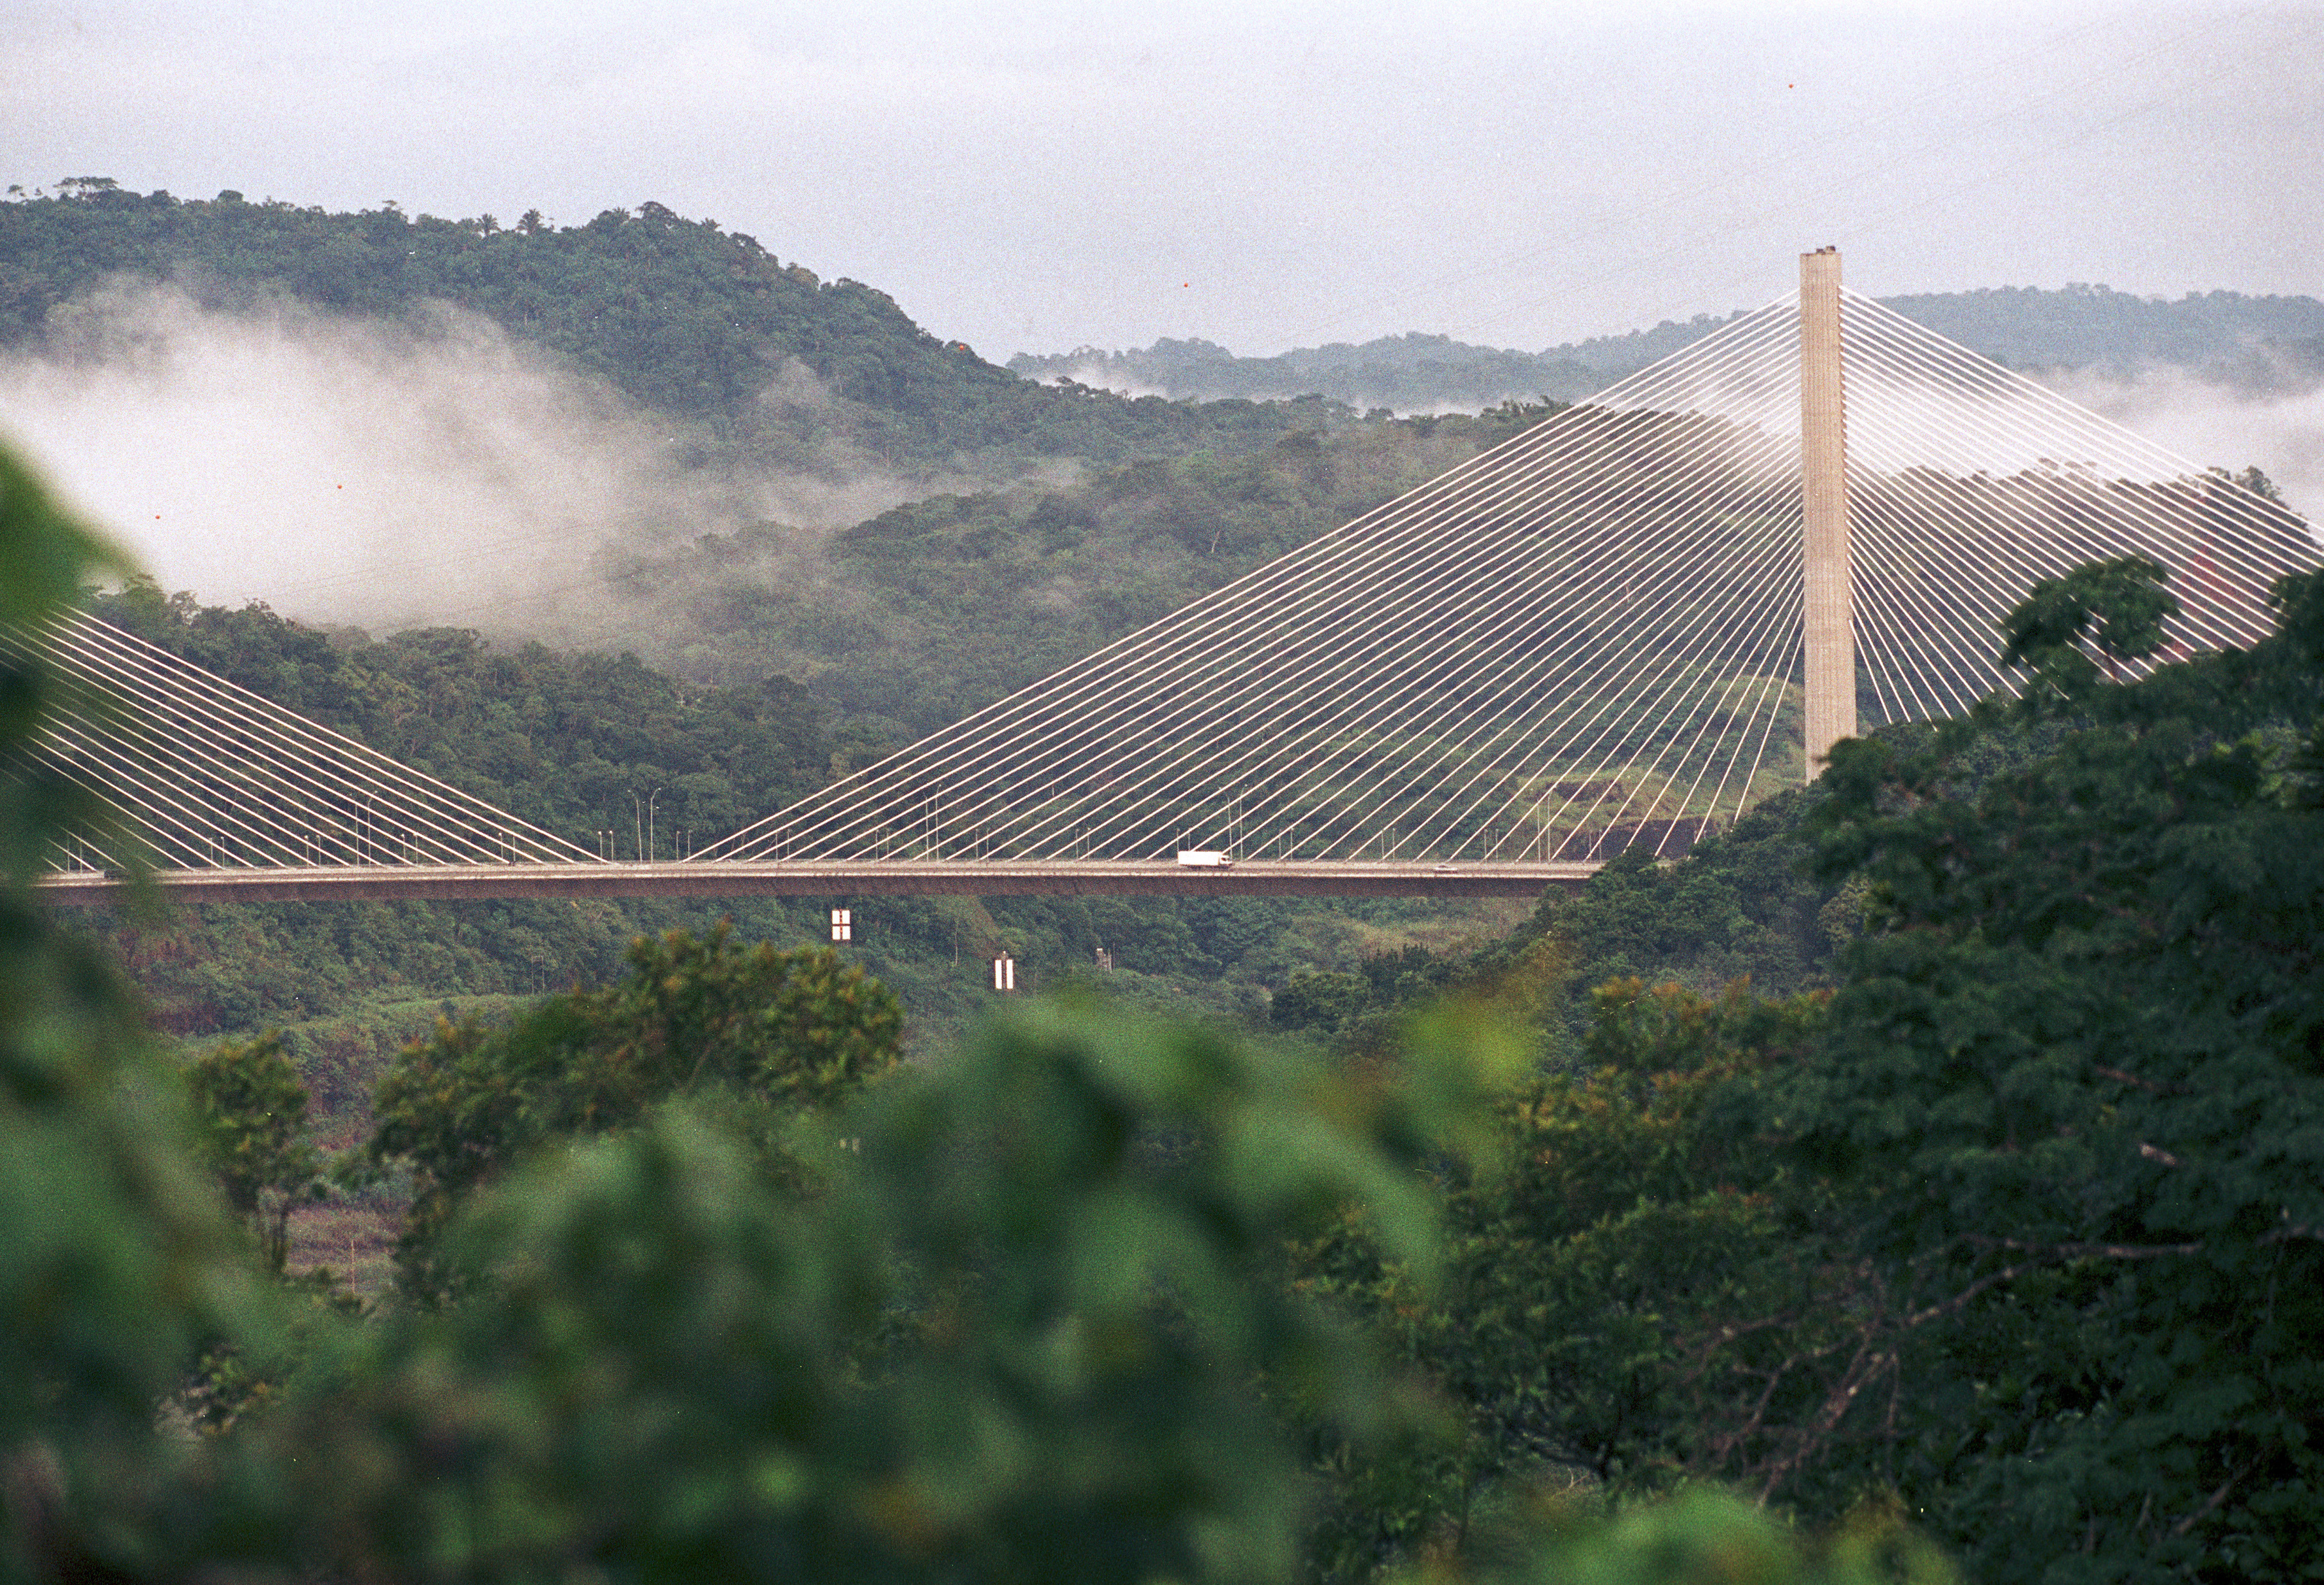 The Puente Centenario, or Centennial Bridge, spanning the Panama Canal opened for traffic in September 2005. It's the second road to cross the Panama Canal and was built to ease congestion of the first roadway, the Bridge of the Americas.